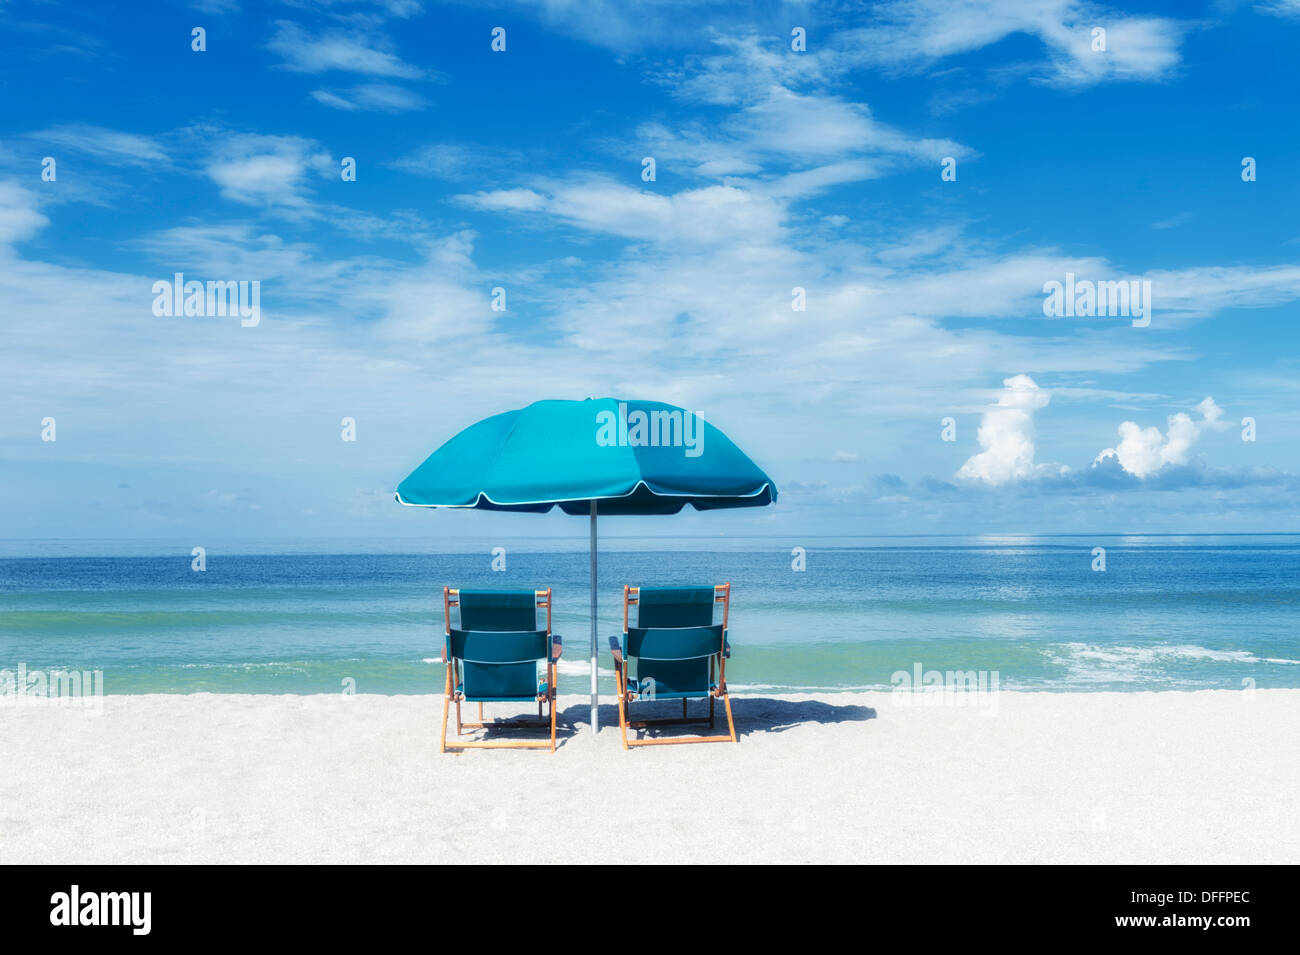 Beach Chairs With Umbrella Two Turquoise Beach Chairs Under Umbrella Facing The Ocean Sea